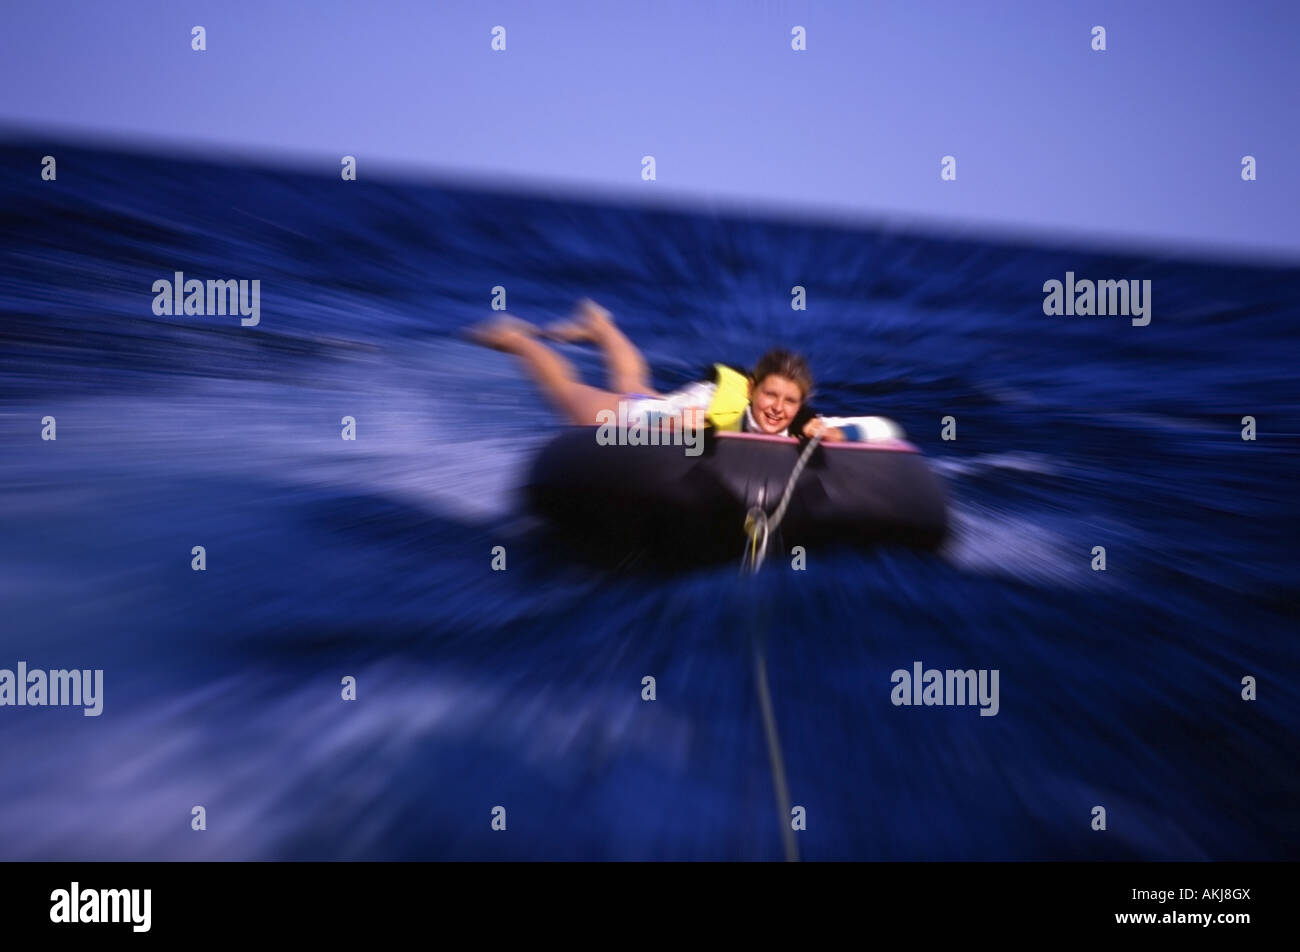 A young teen tubing - Stock Image